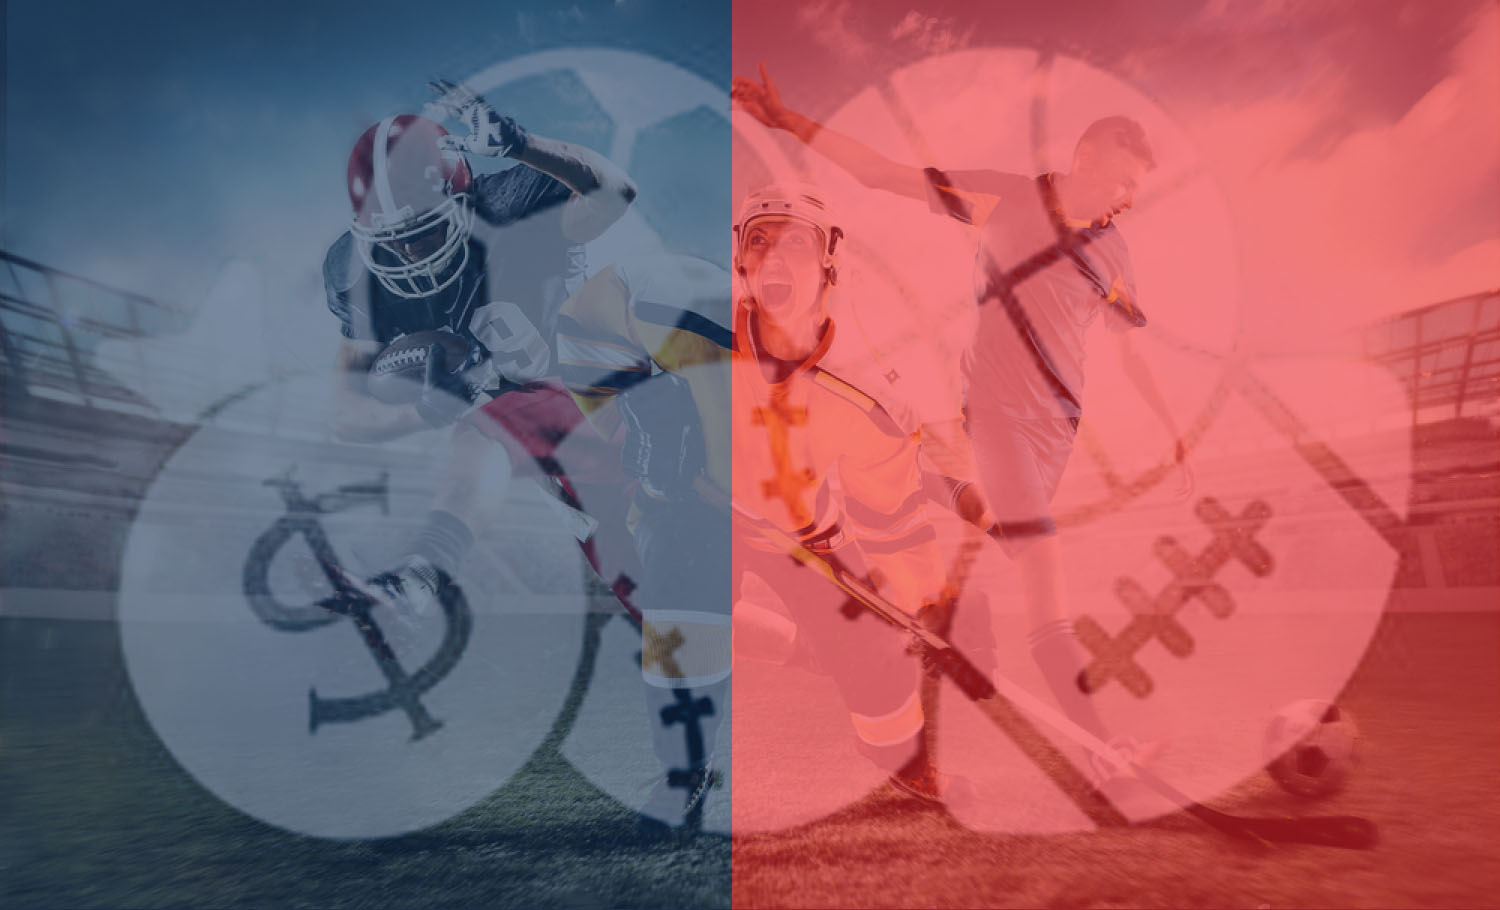 Online Sportsbook Betting With or Against the Public Consensus